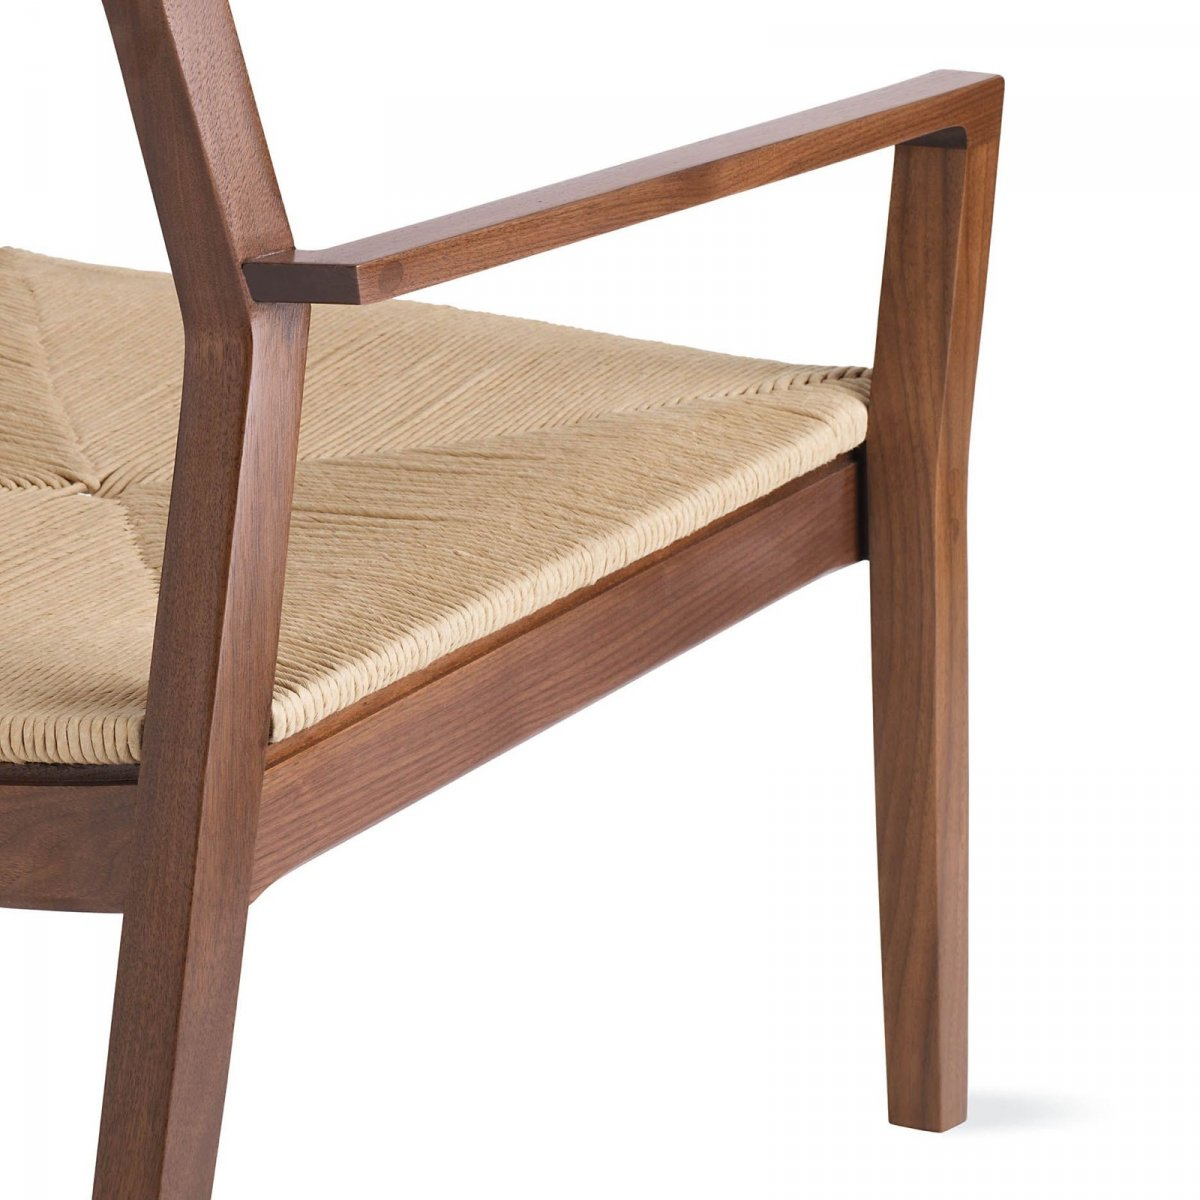 Krusin Lounge Arm Chair, walnut, detail.